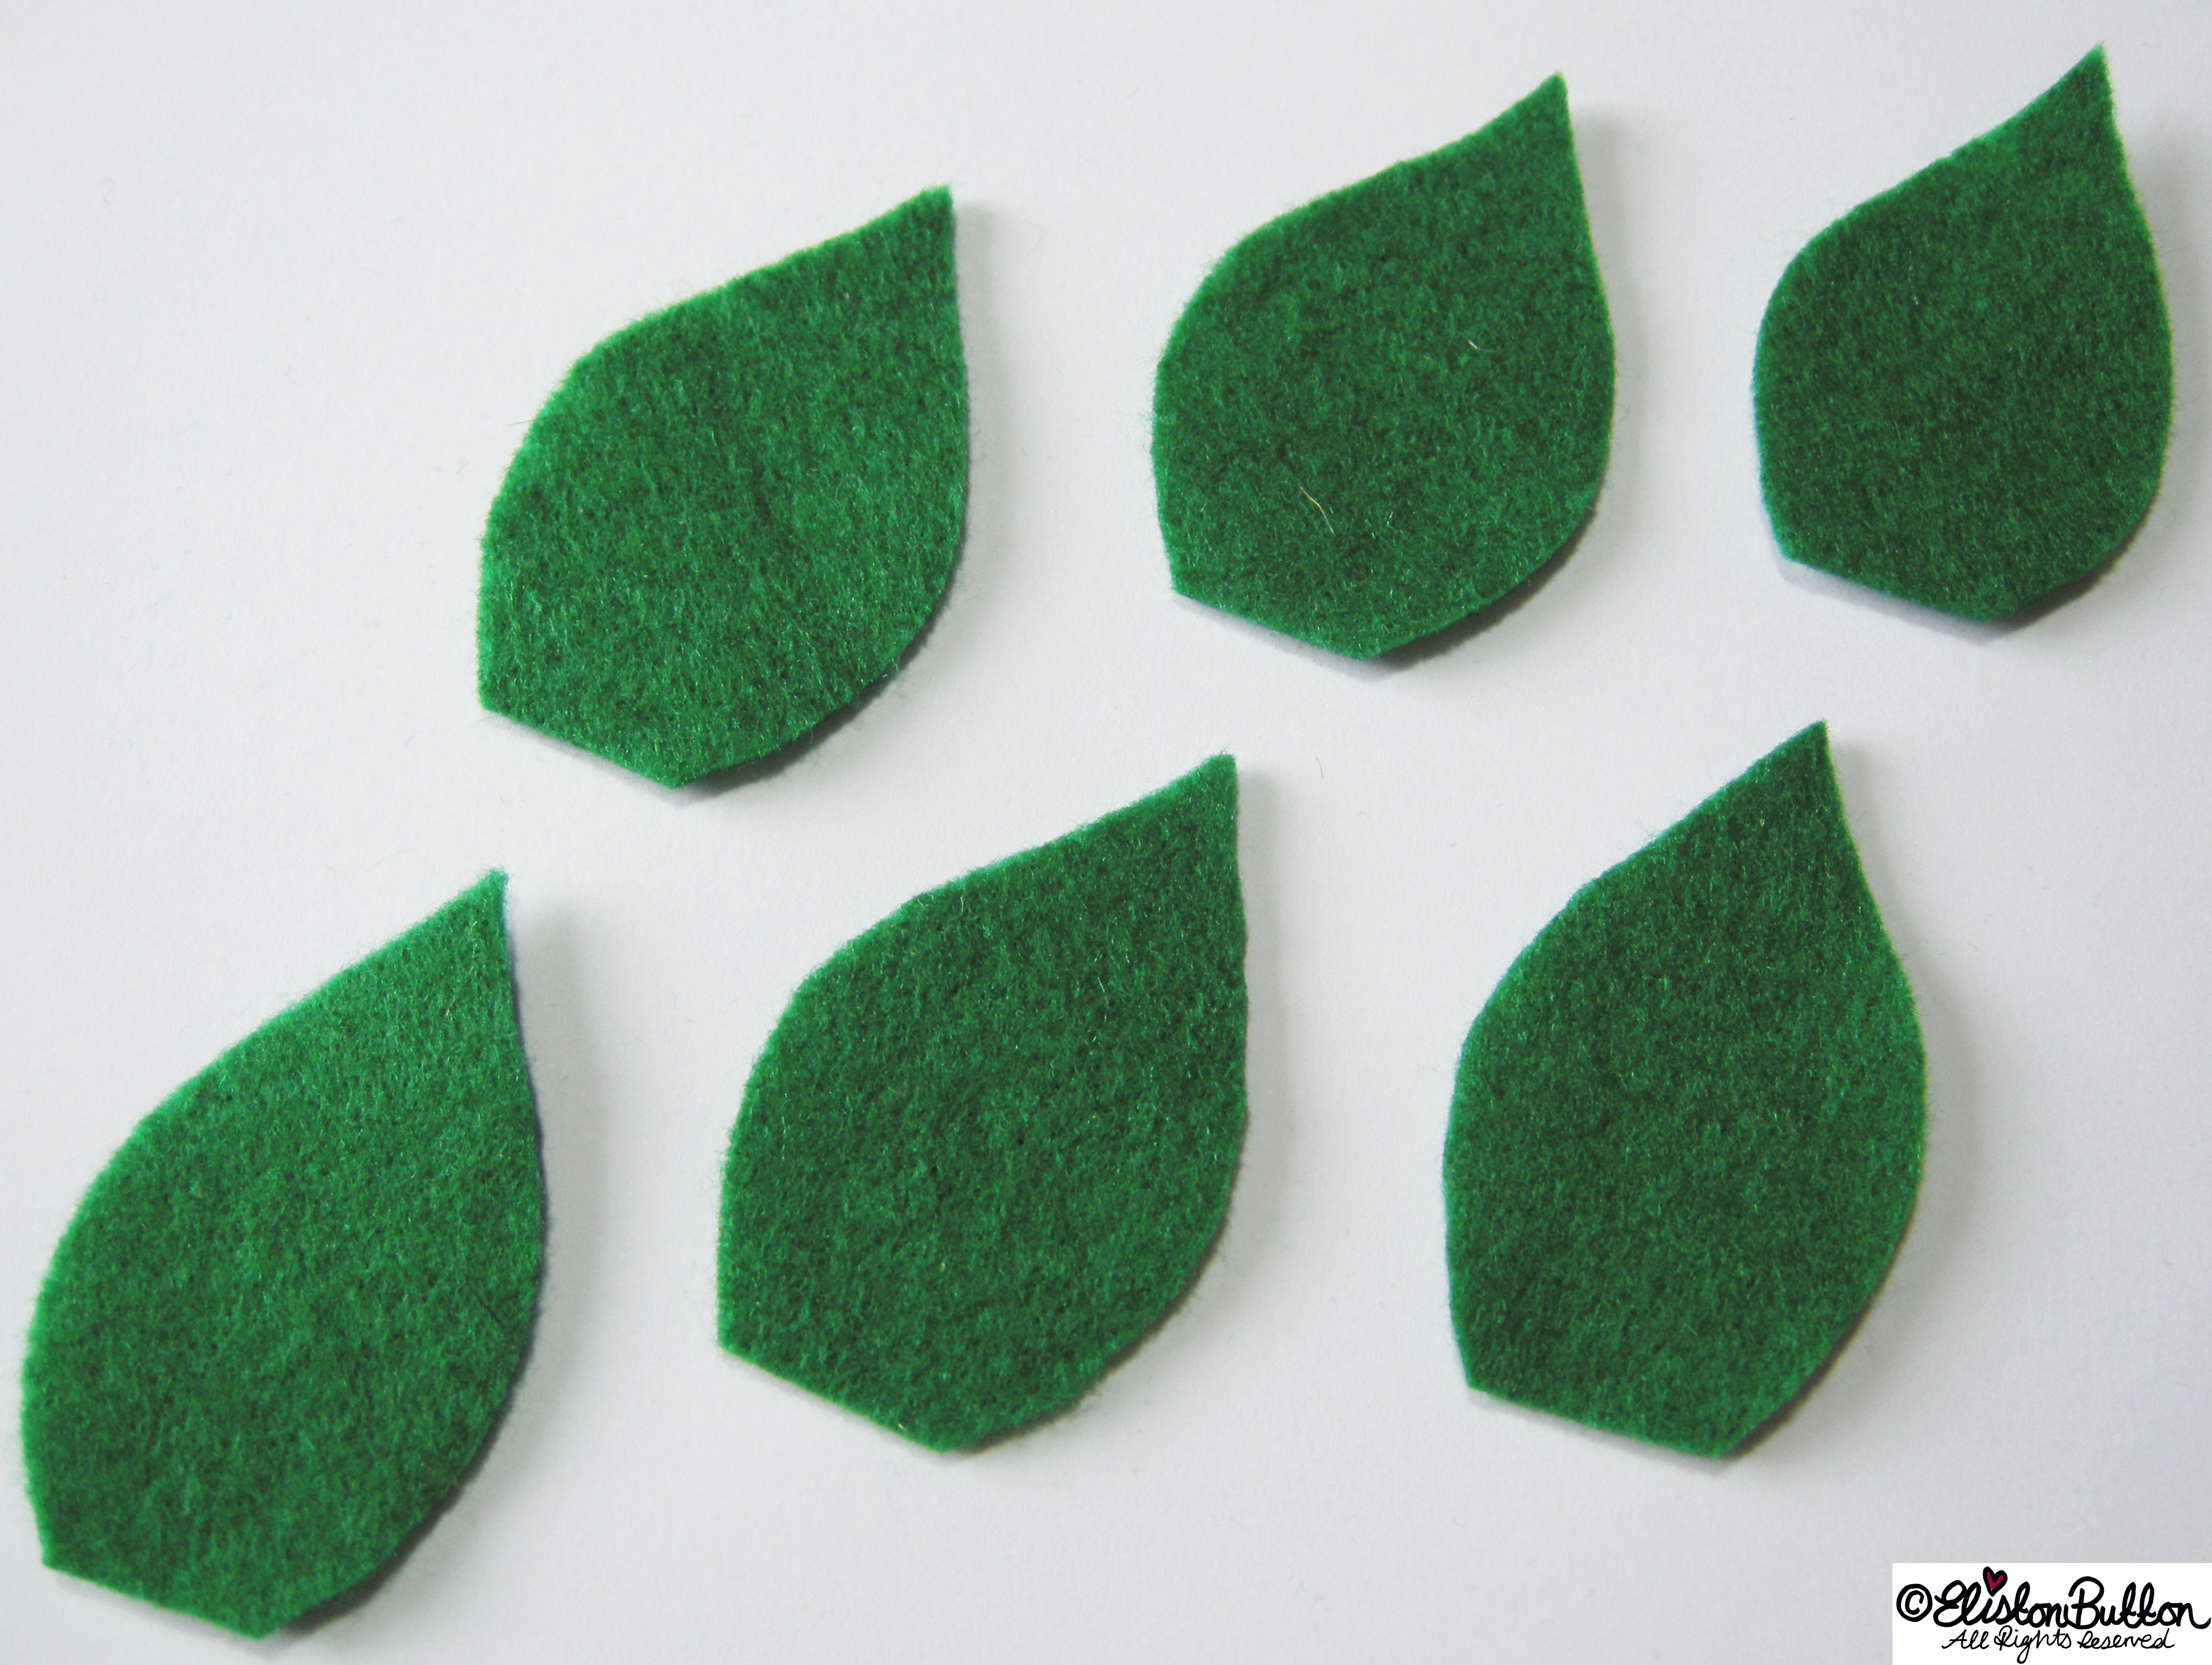 Green Felt Leaf Shapes - 27 Before 27 - Leafy Greens at www.elistonbutton.com - Eliston Button - That Crafty Kid – Art, Design, Craft & Adventure.